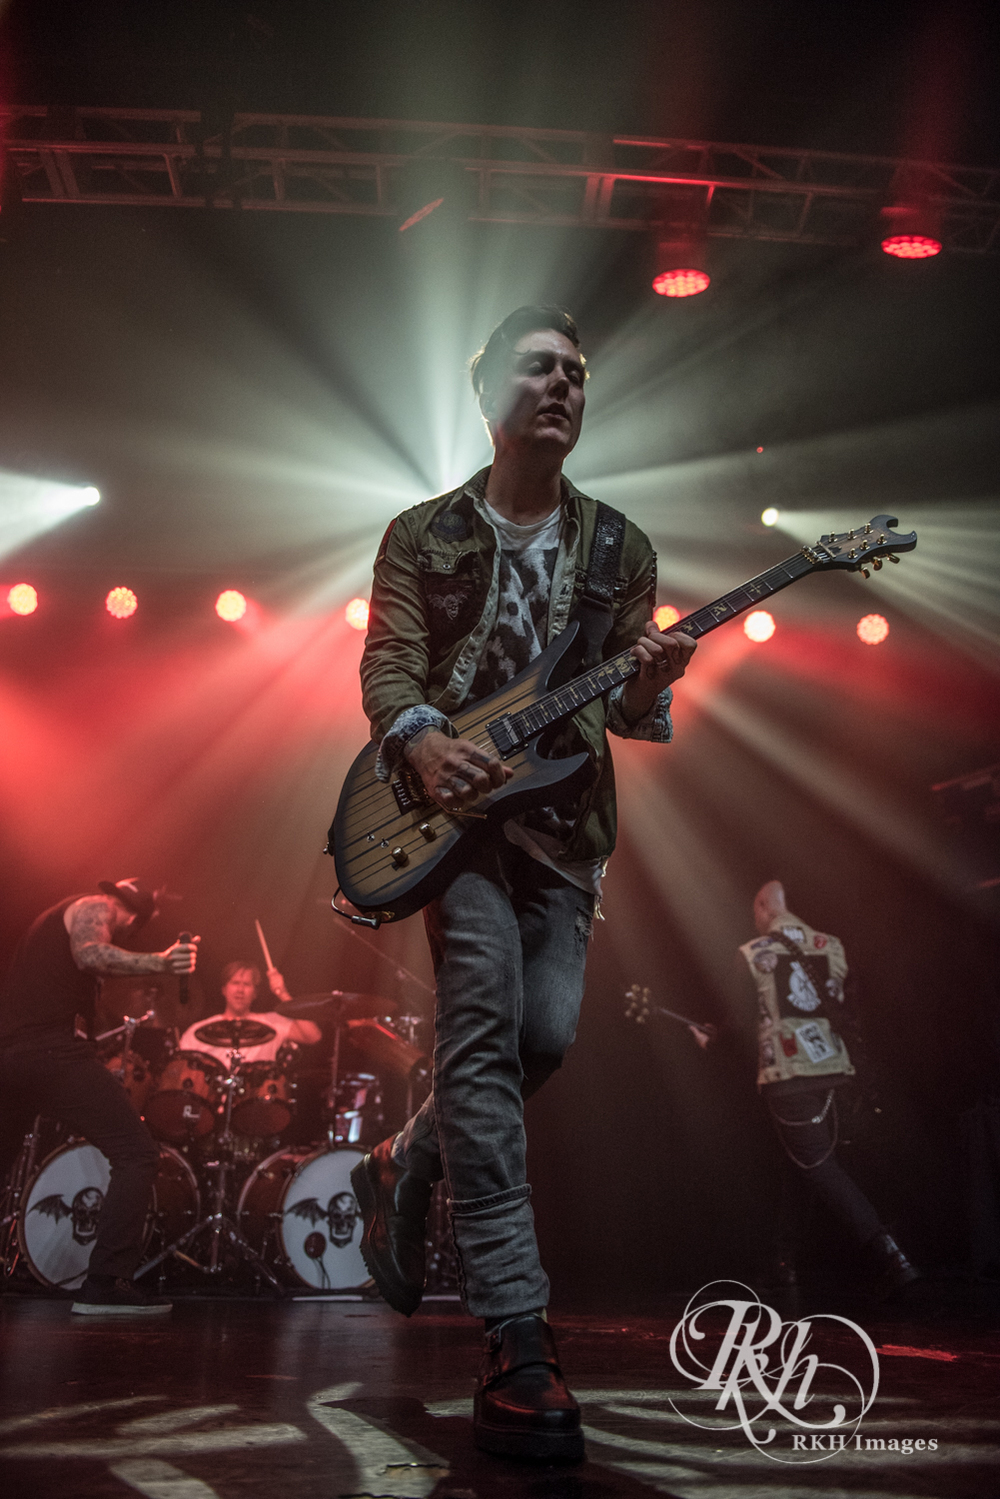 a7x rkh images (38 of 52).jpg